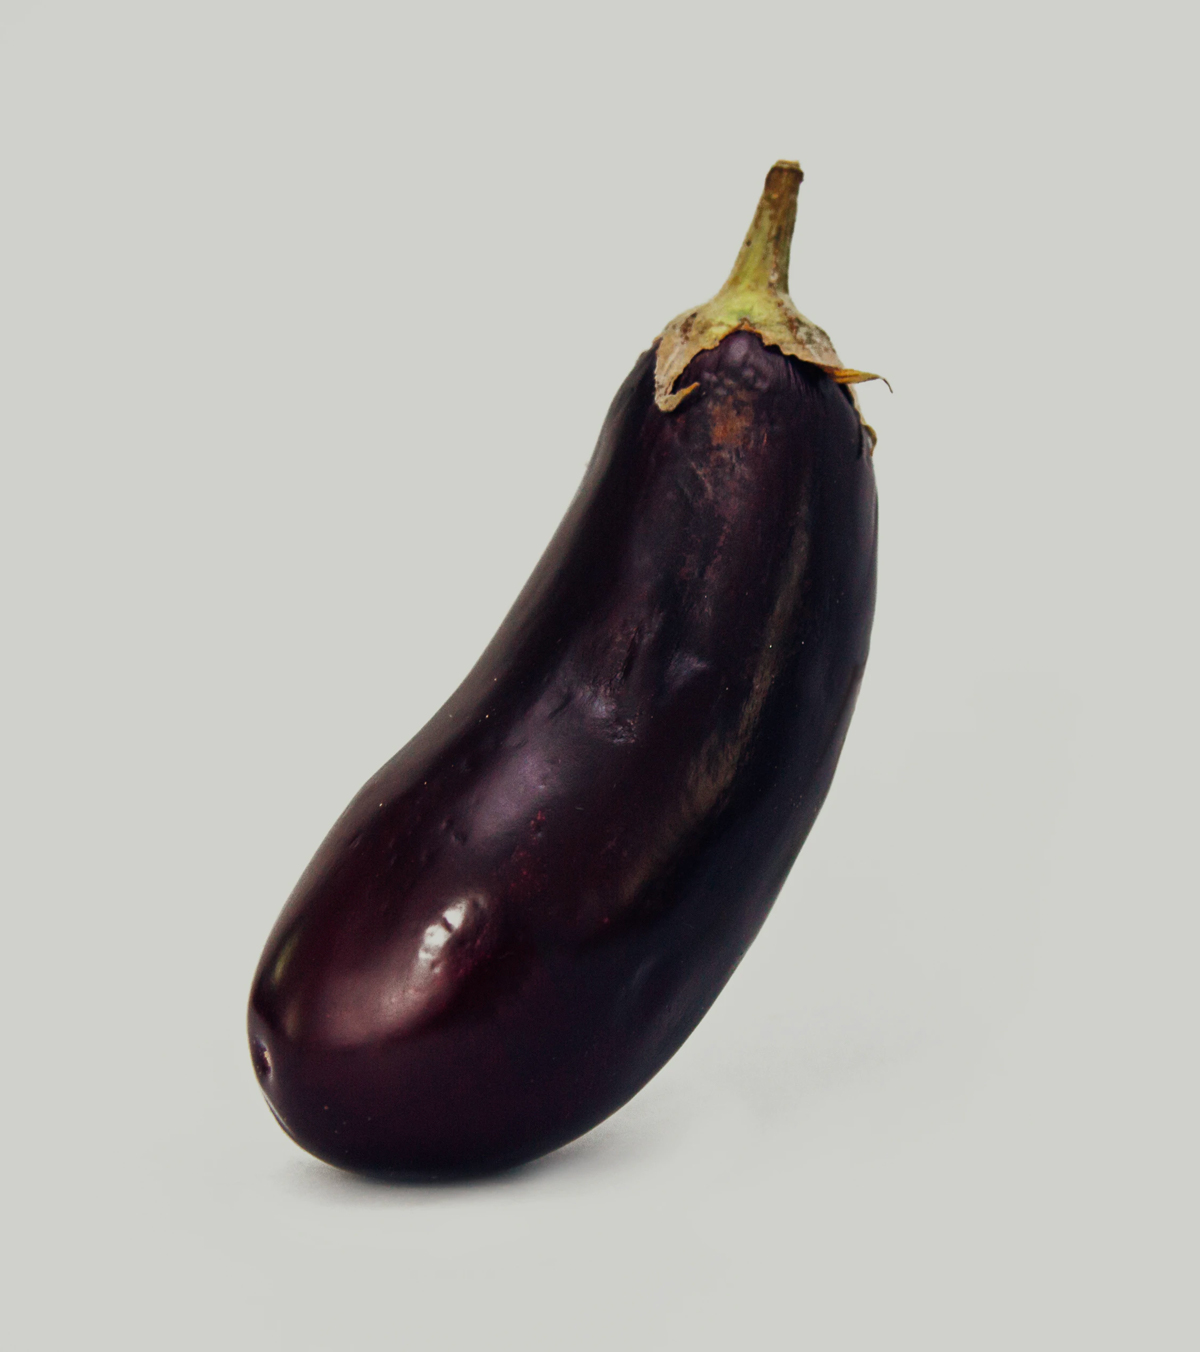 Photo of an eggplant: How to get a big dick.